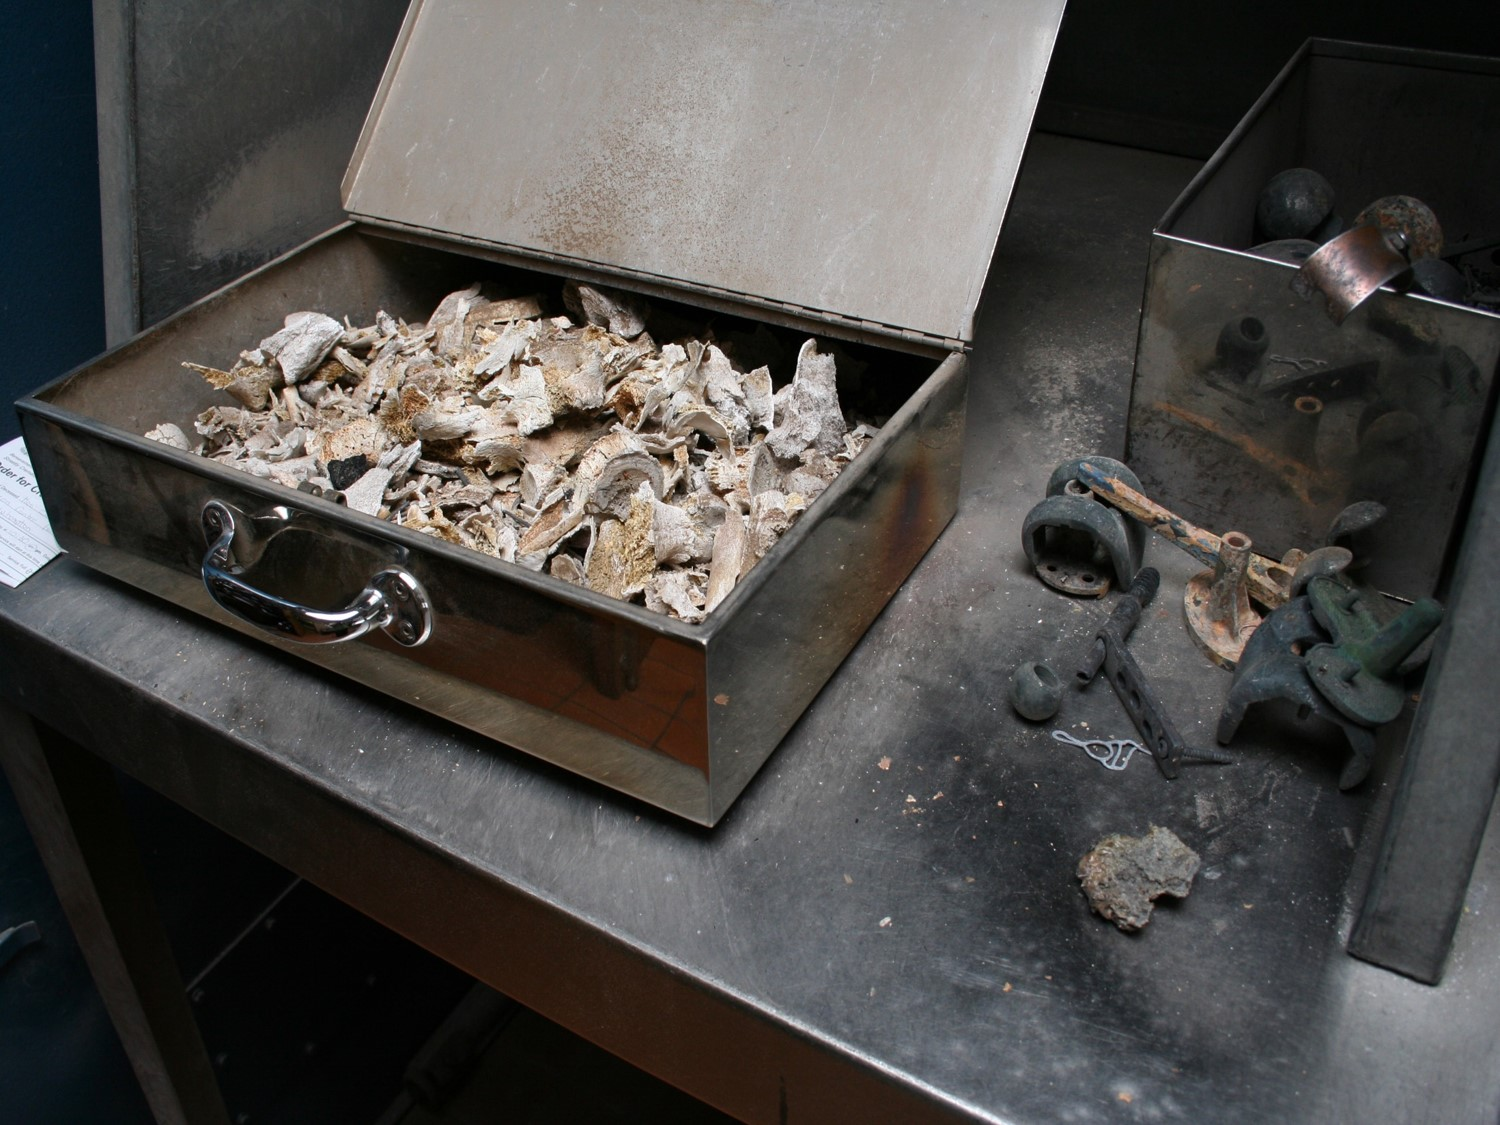 Laura Peters, Photograph of charred bones and hip replacement joints following cremation from the  Survivors of the Fire  series, 2011.